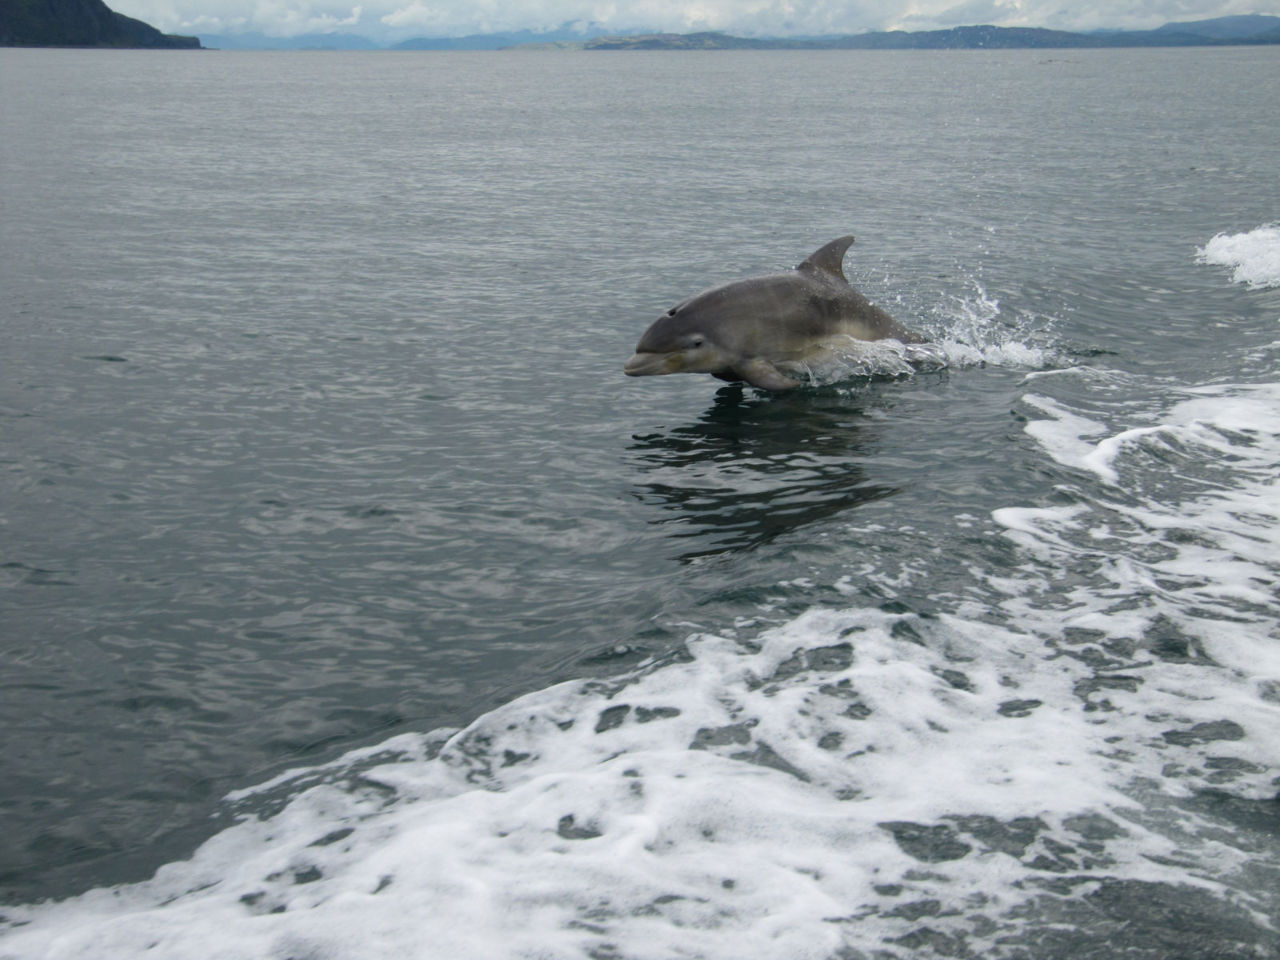 Taken by Ayushi patel A stunning photo of a young Bottle nose Dolphin